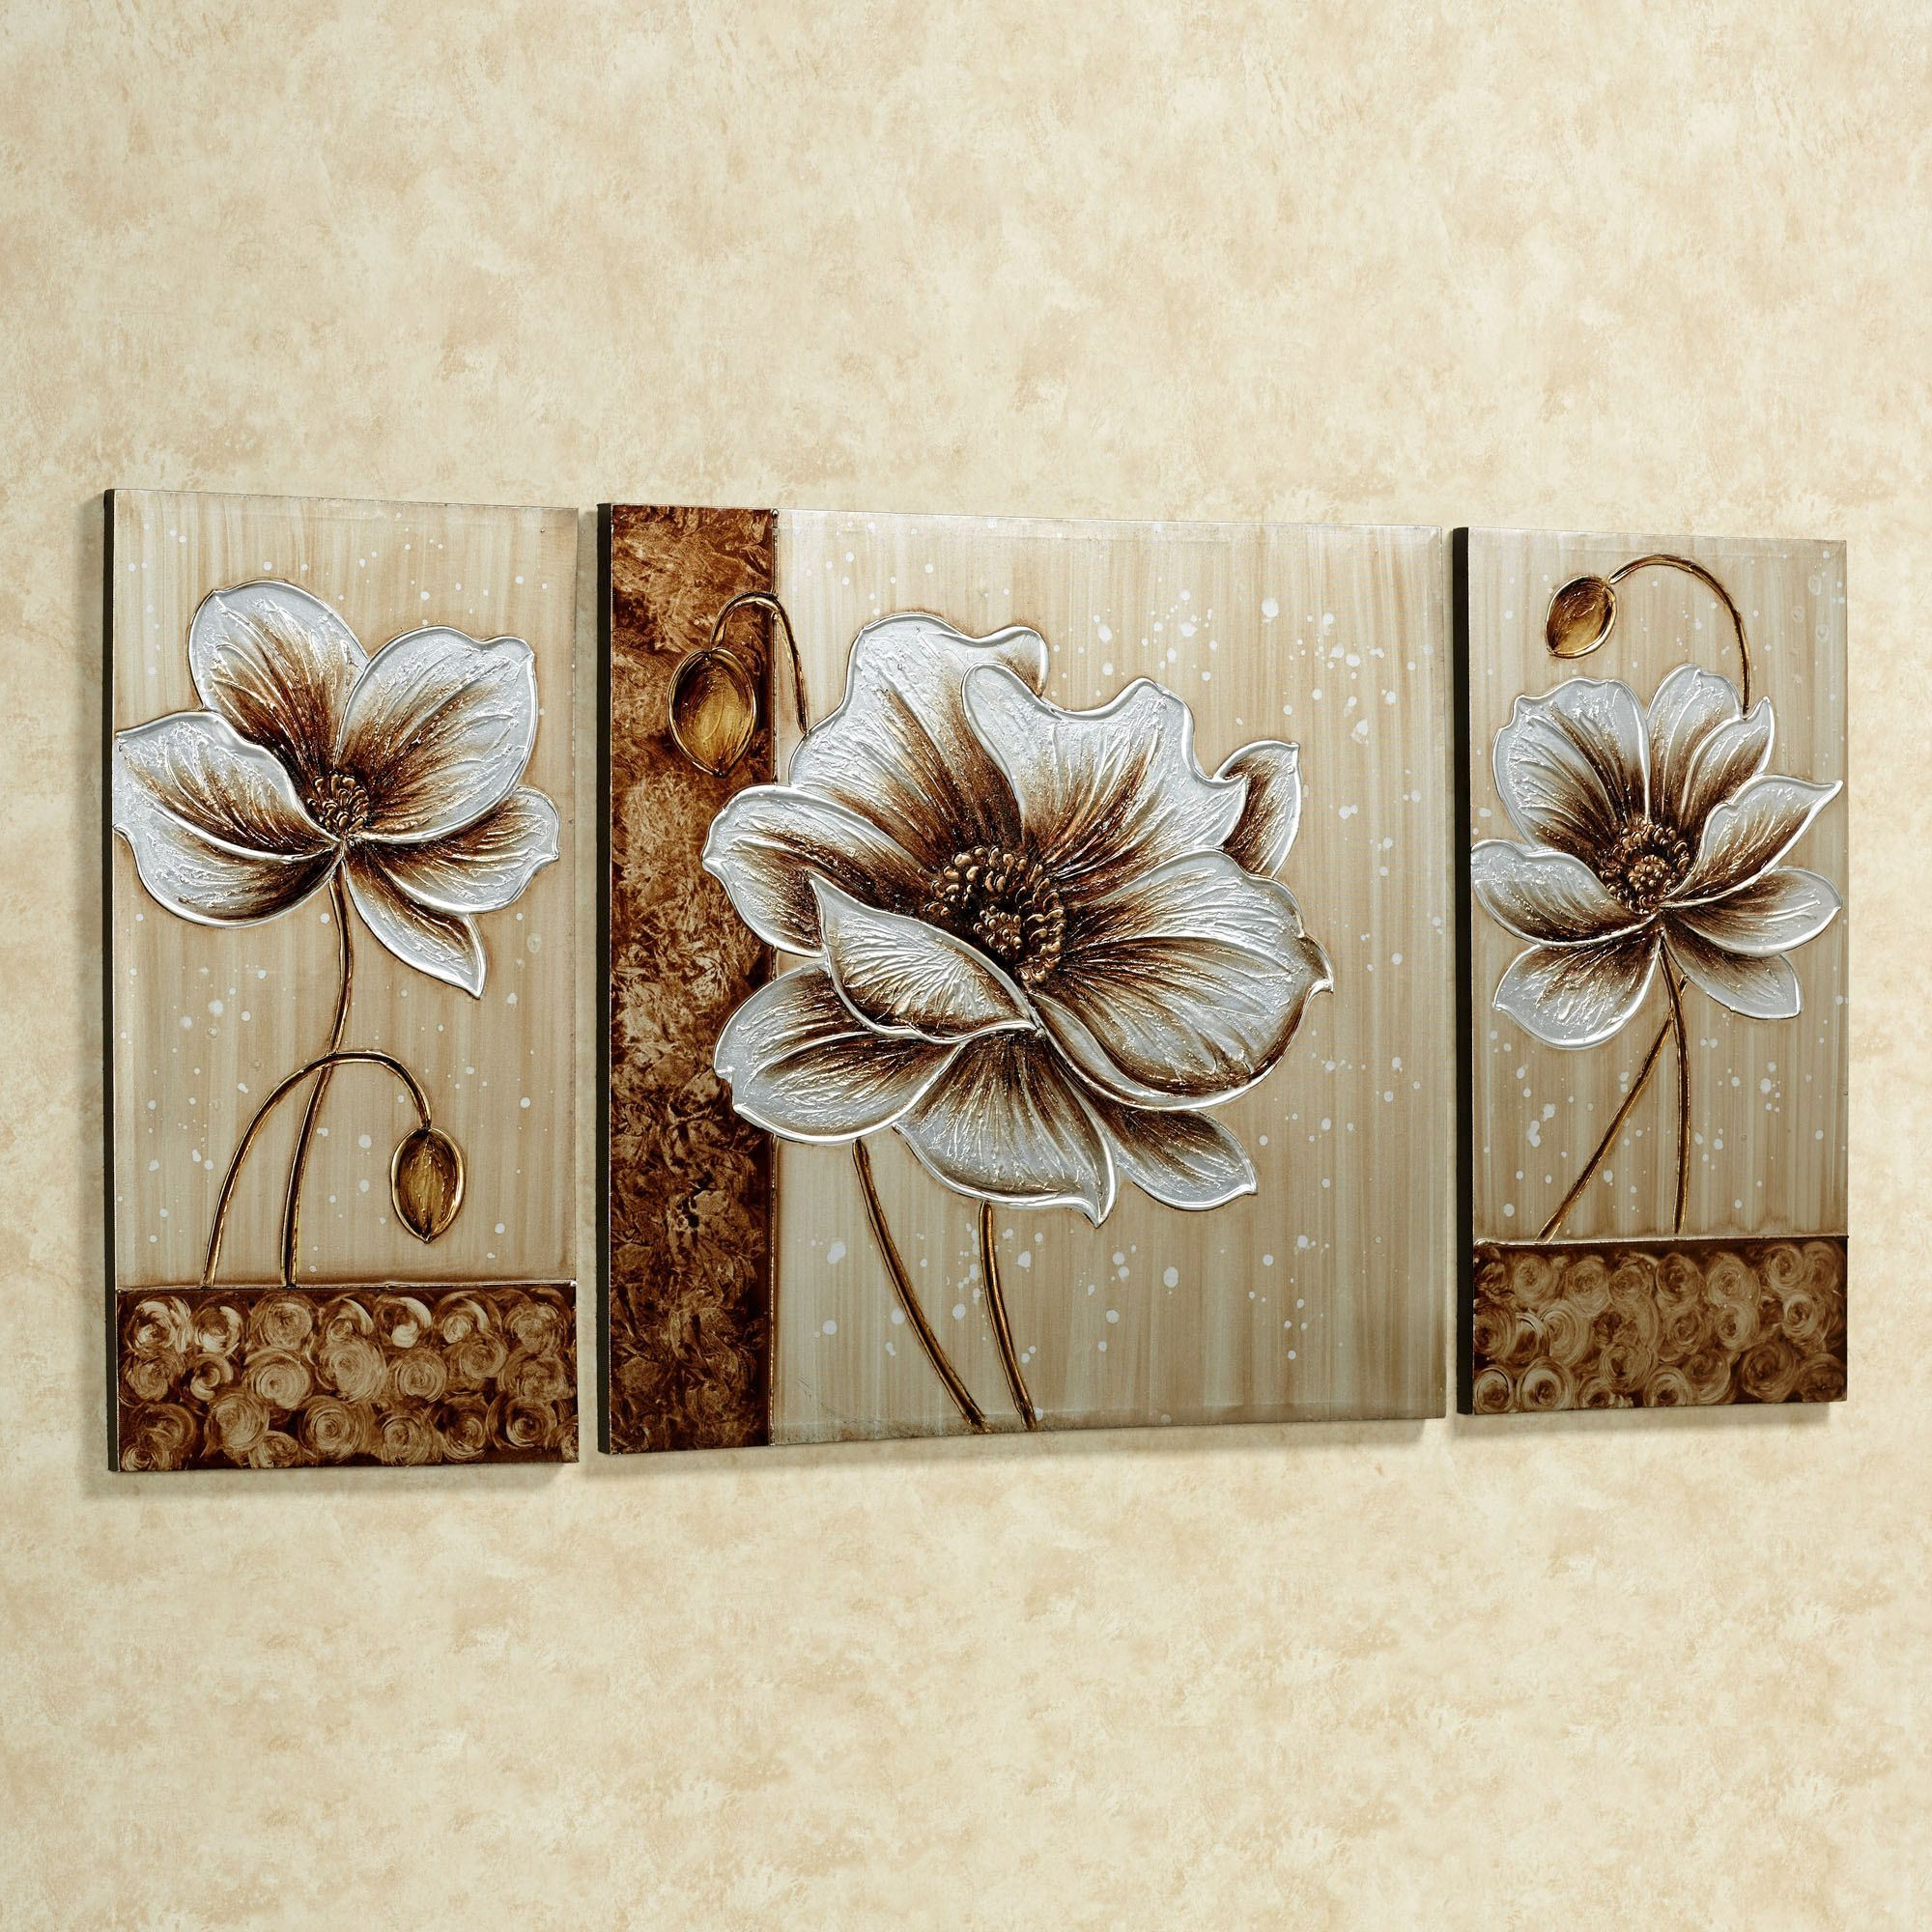 Wall Art Design Three Canvas Rectangle Square Cream Ideas Pertaining To 4 Piece Metal Wall Decor Sets (View 5 of 30)